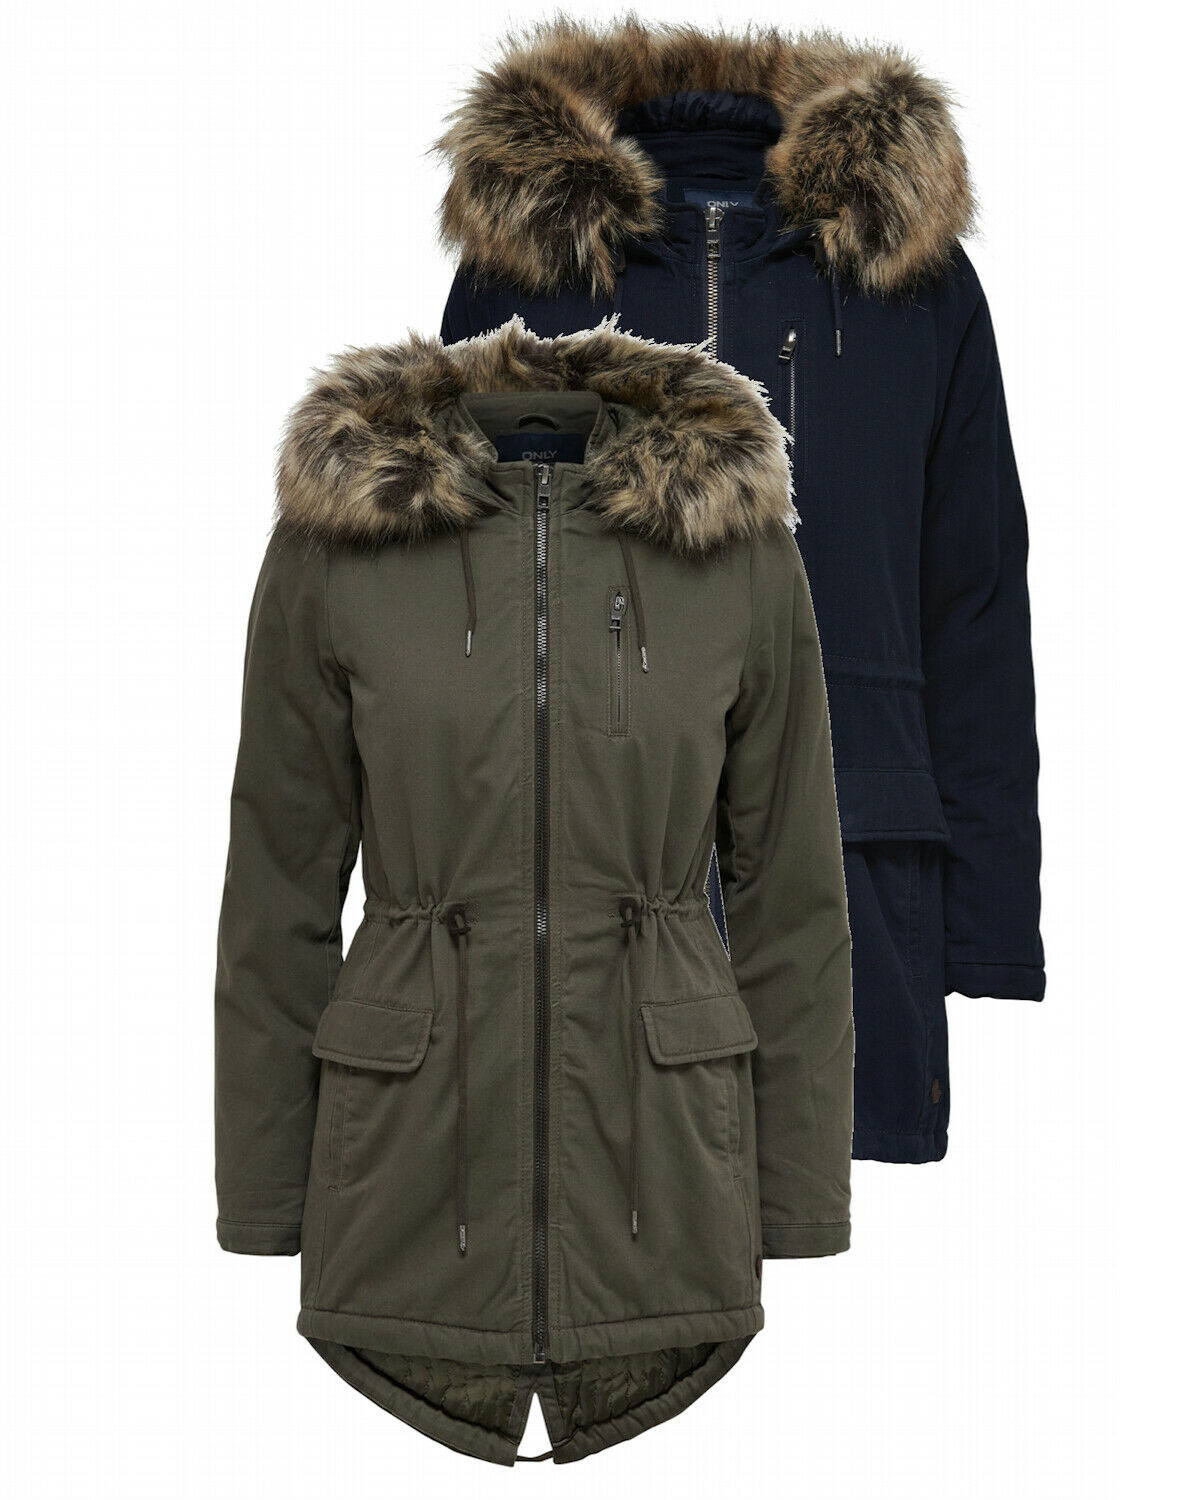 only damen mantel onlmacy canvas parka jacke 15136011 xs xl mit kapuze gr n blau eur 39 90. Black Bedroom Furniture Sets. Home Design Ideas